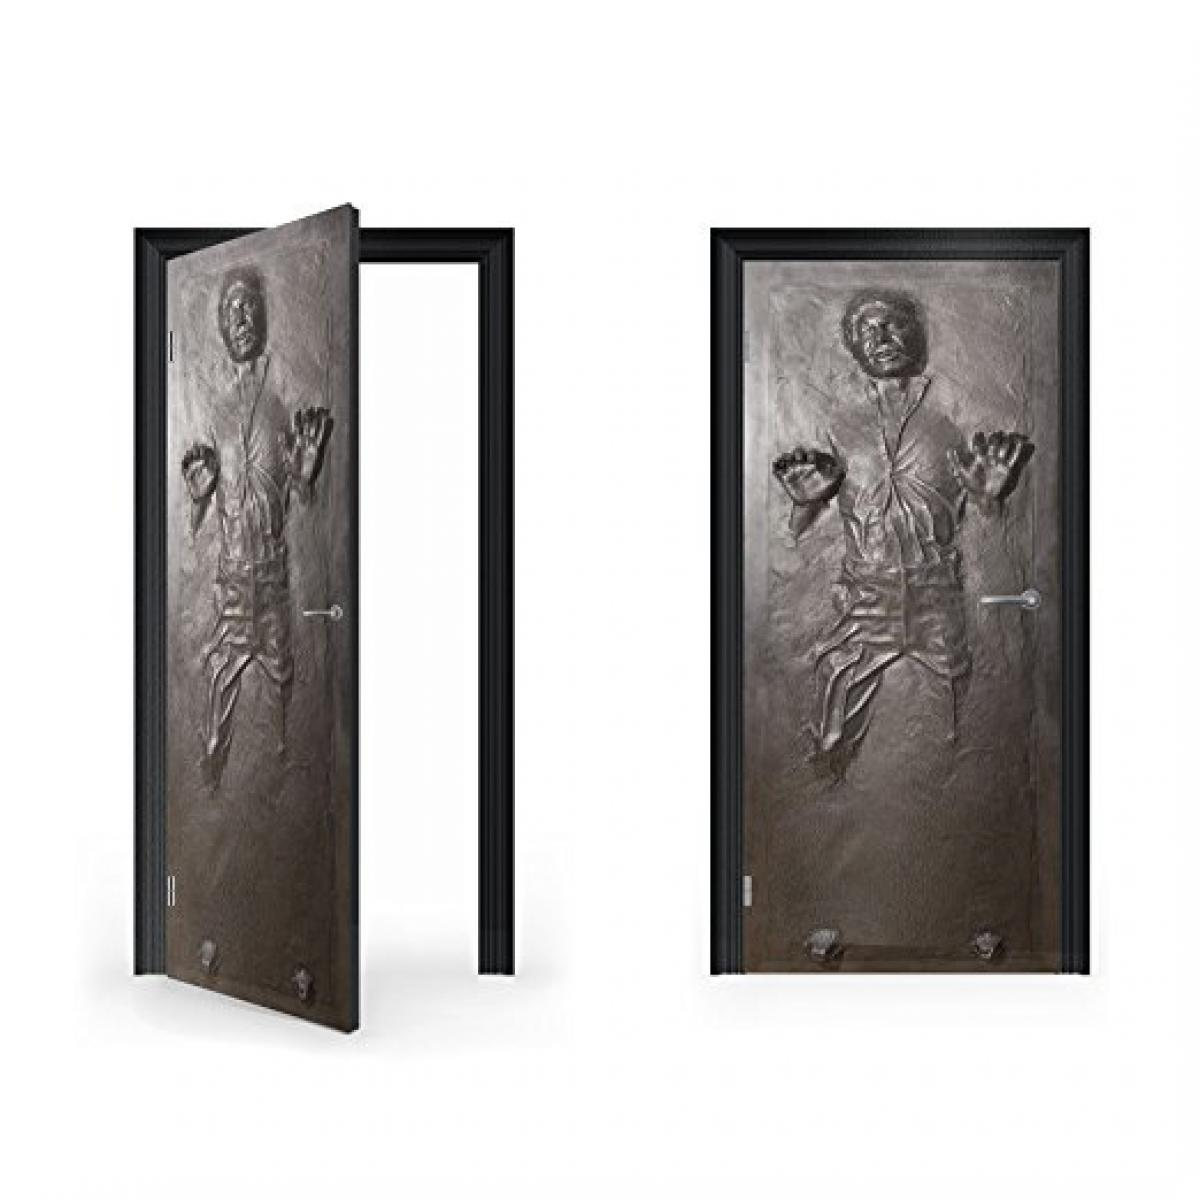 Han Solo Carbonite Vinyl Sticker for Door